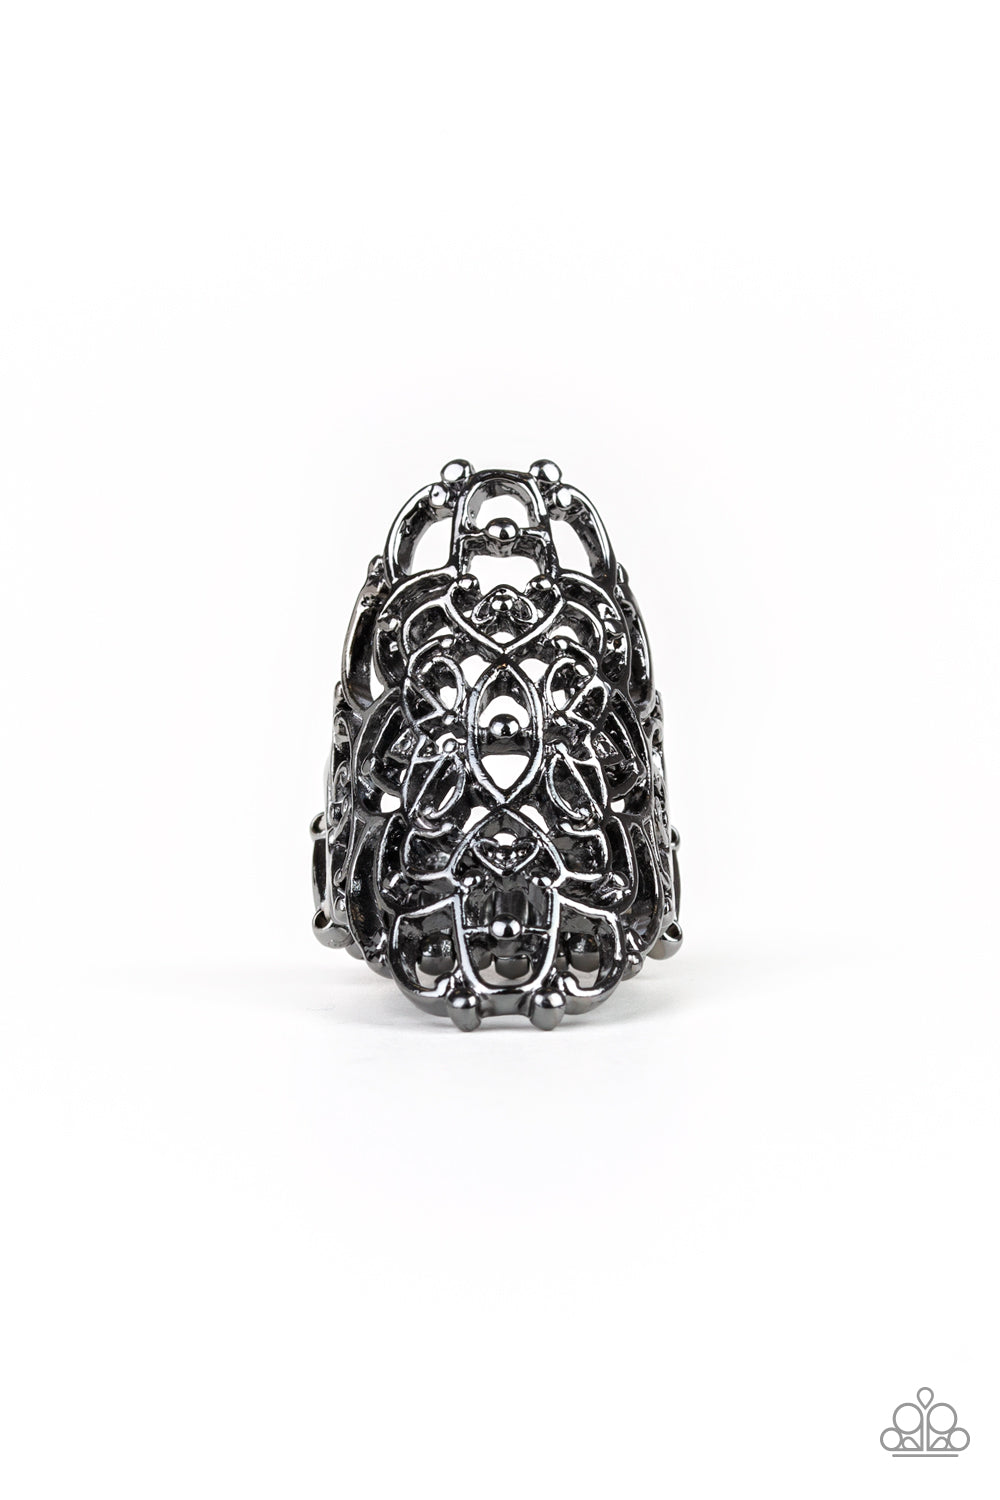 Paparazzi Accessories - Mandala Magic - Black Ring - JMJ Jewelry Collection